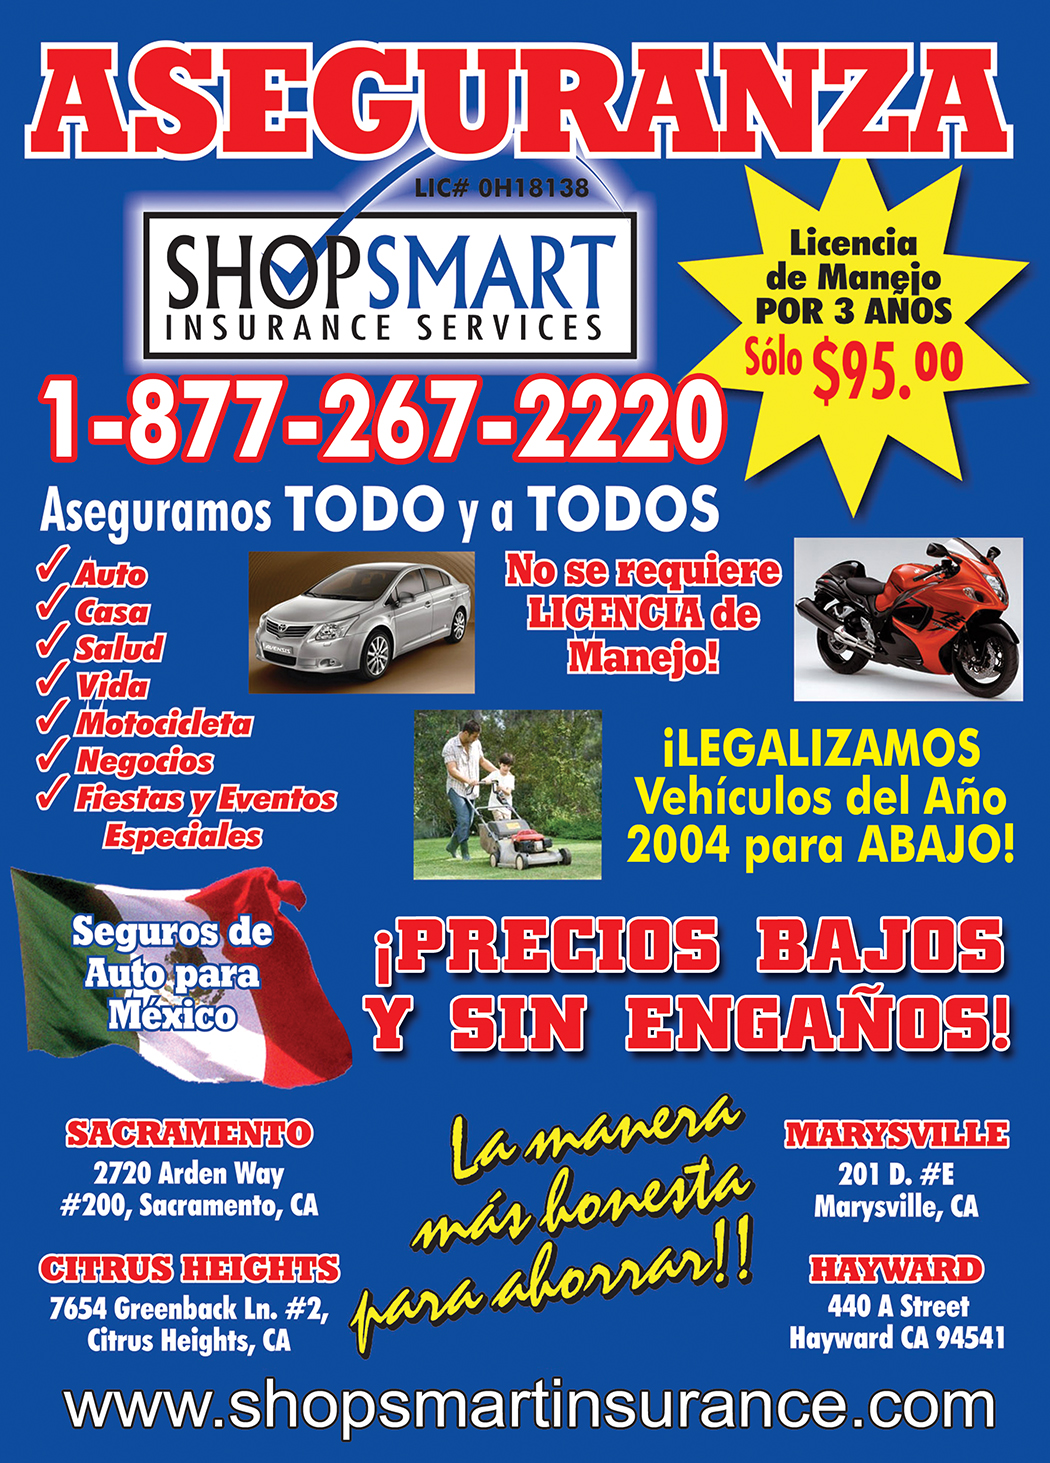 Shopsmart Insurance 1pag junio 2012 copy.jpg